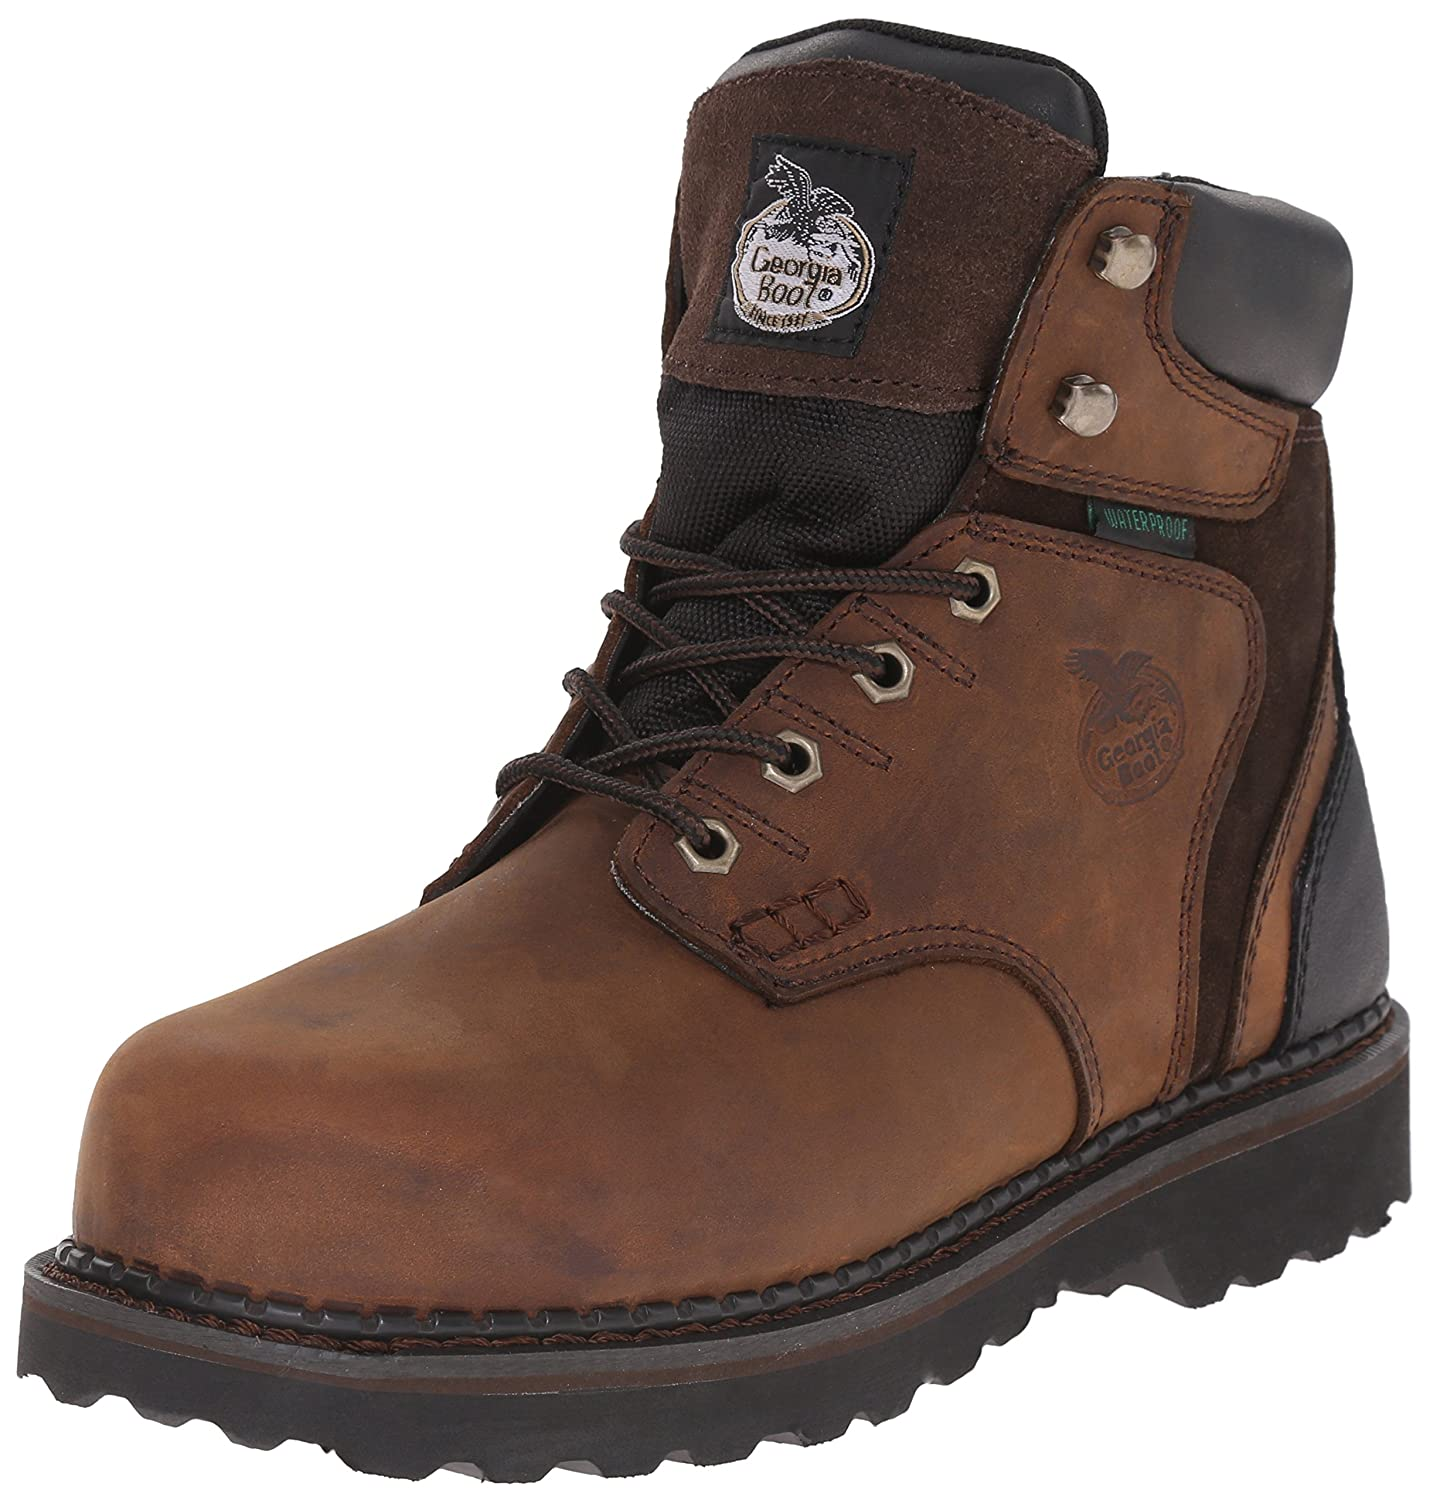 Georgia Boot Men's Brookville 6 Inch Steel Toe Work Shoe